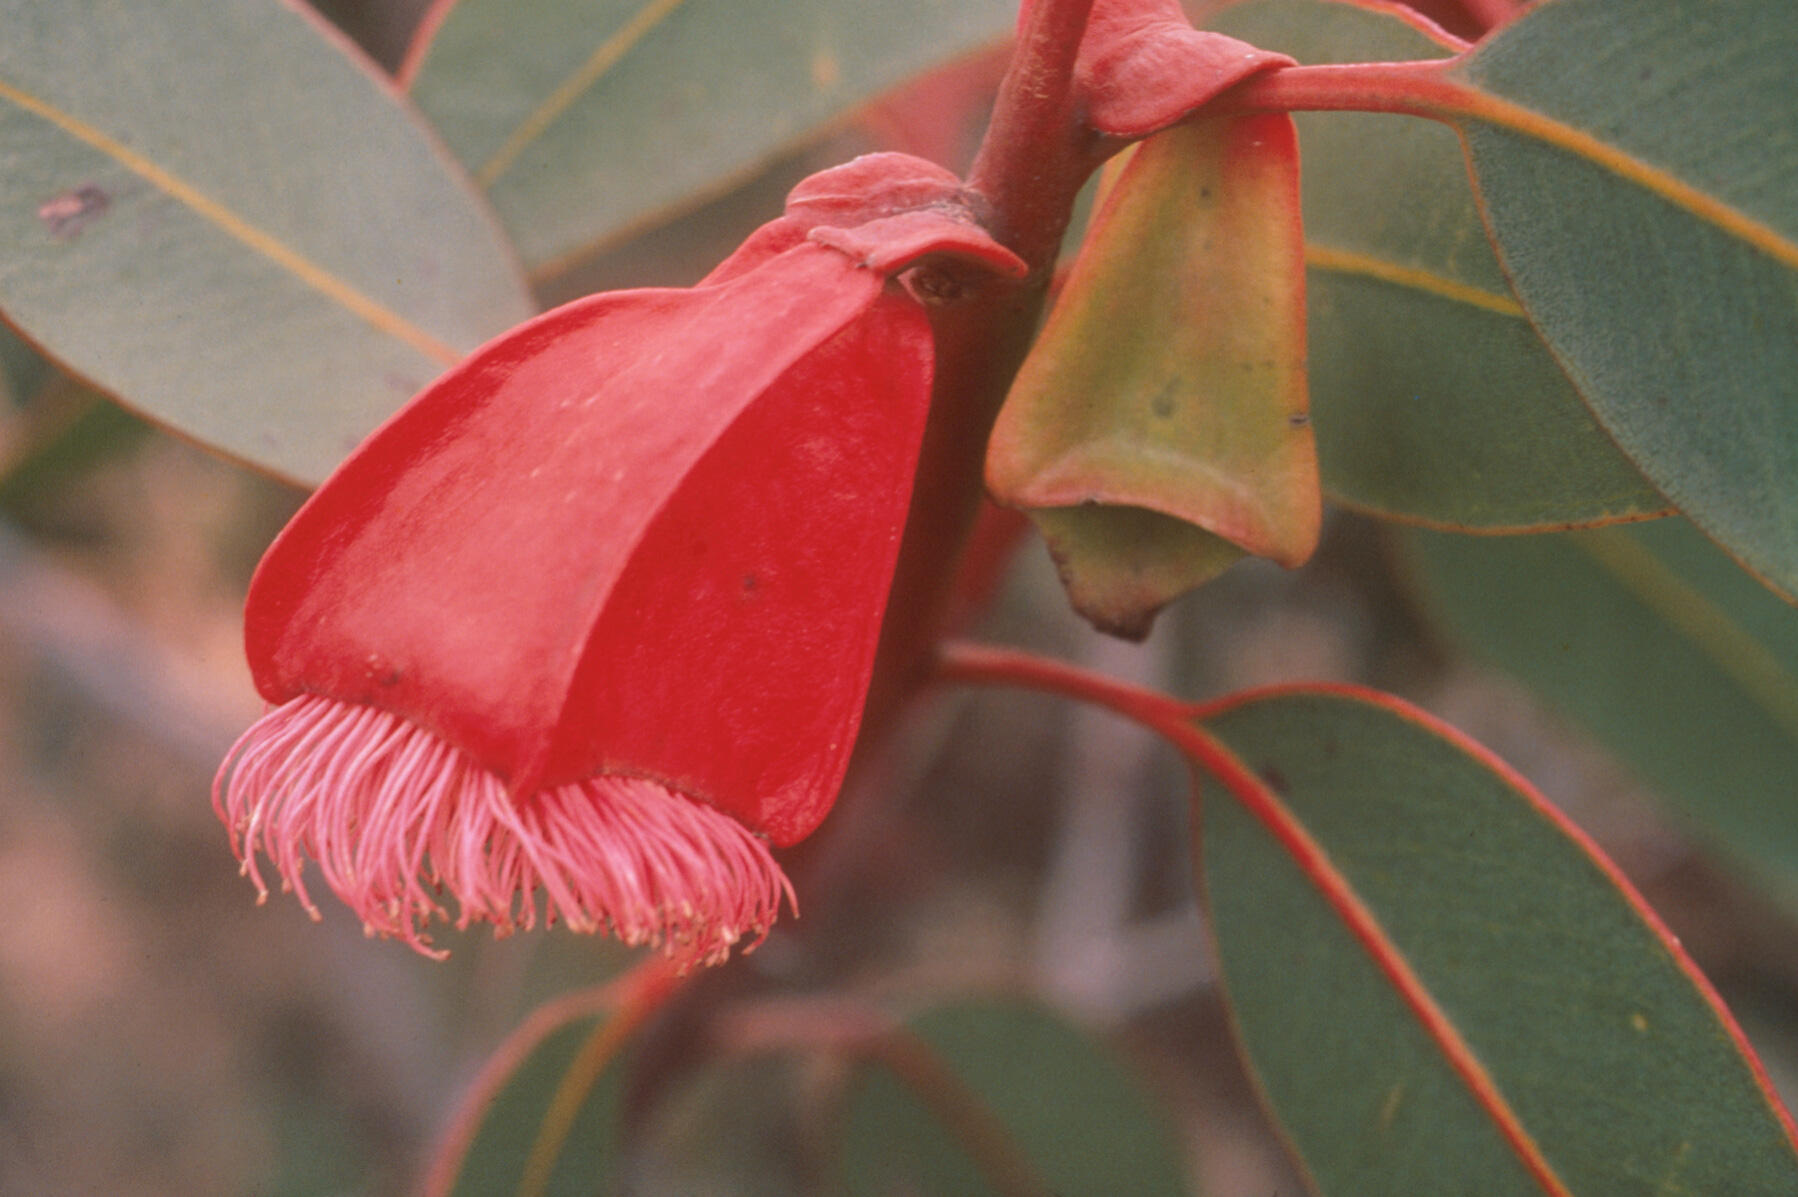 close up flower of Eucalyptus tetraptera (Square-fruited mallee) from Western Australia among green leaves. the flower is an orangey-red rhombus shaped trumpet with hairs along the open edges.